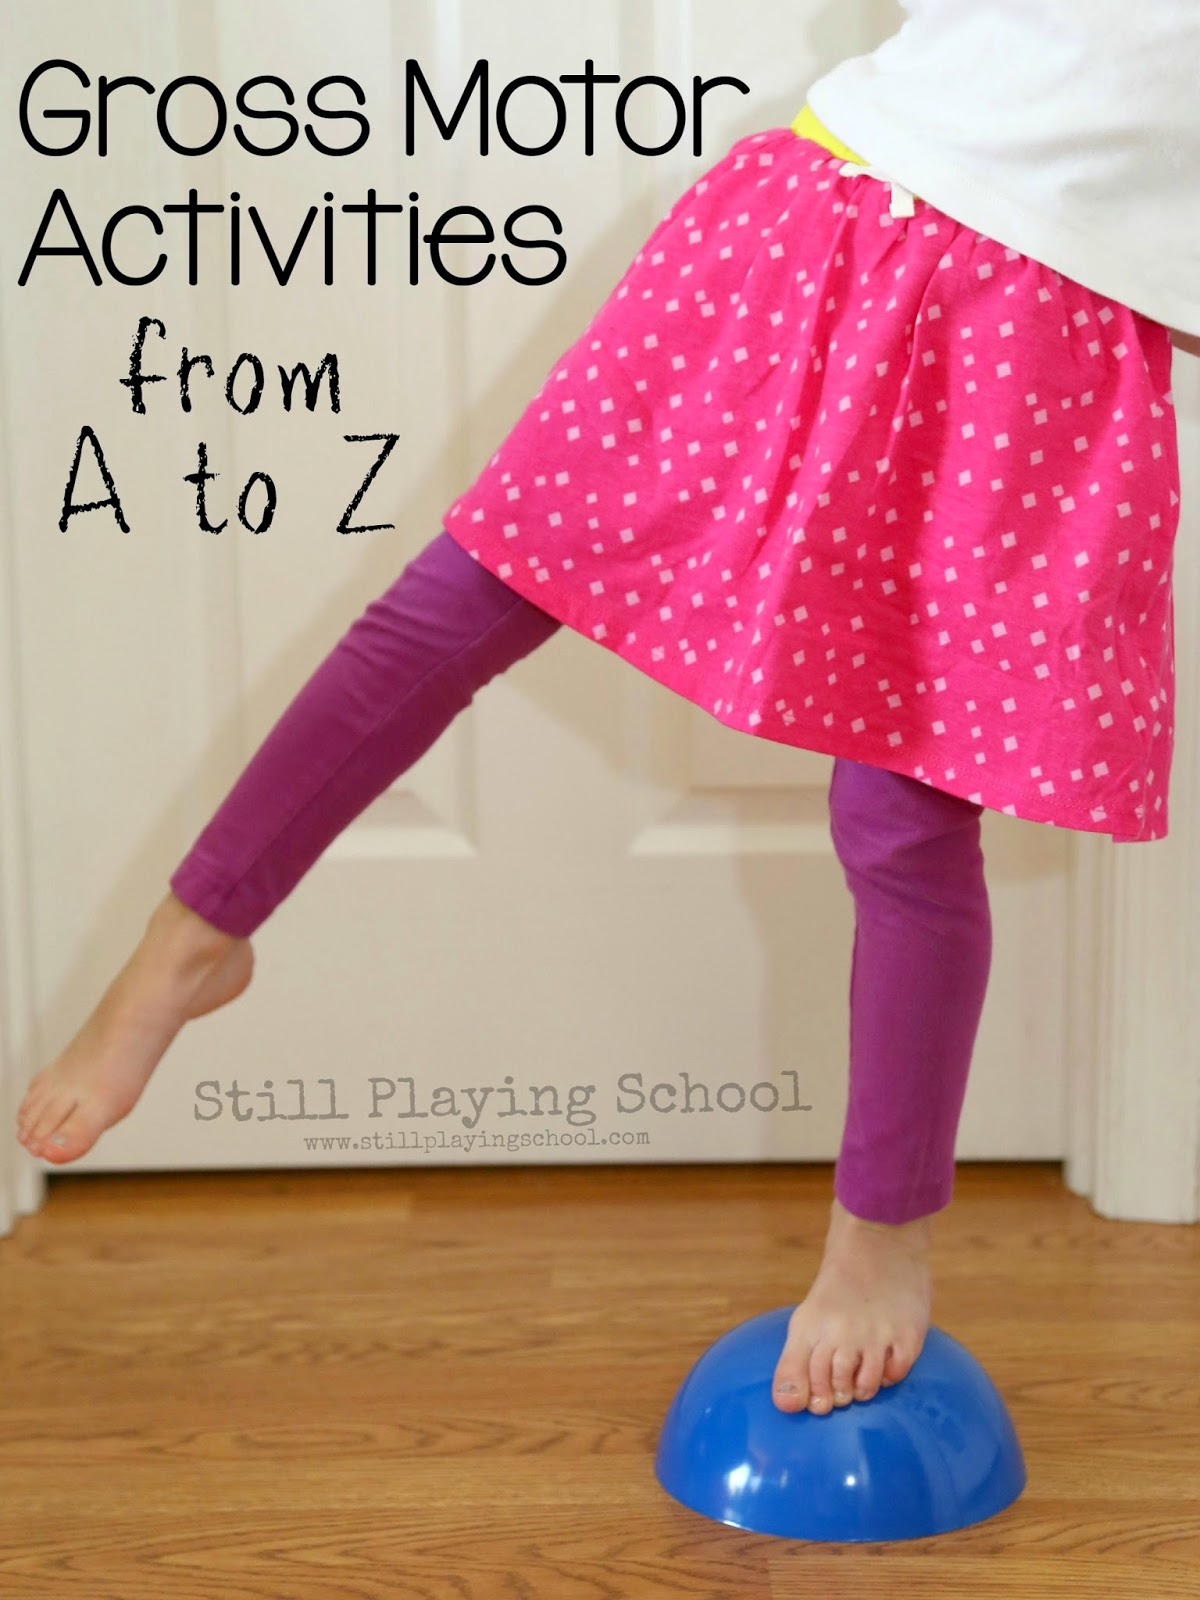 Active Games For Kids Fun Gross Motor Ideas From A To Z